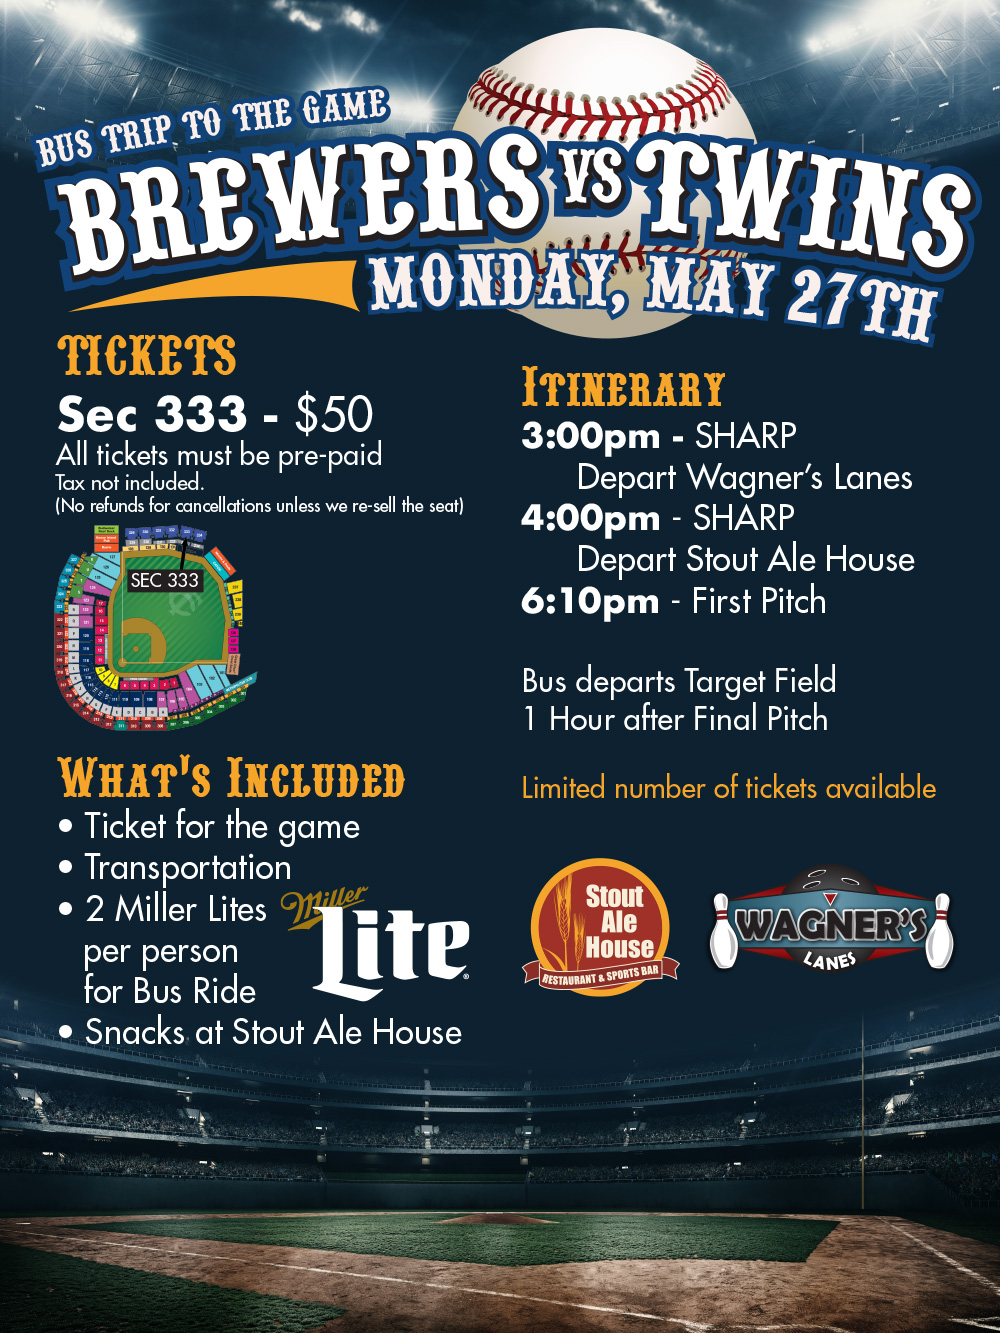 Brewers vs Twins Bus Trip